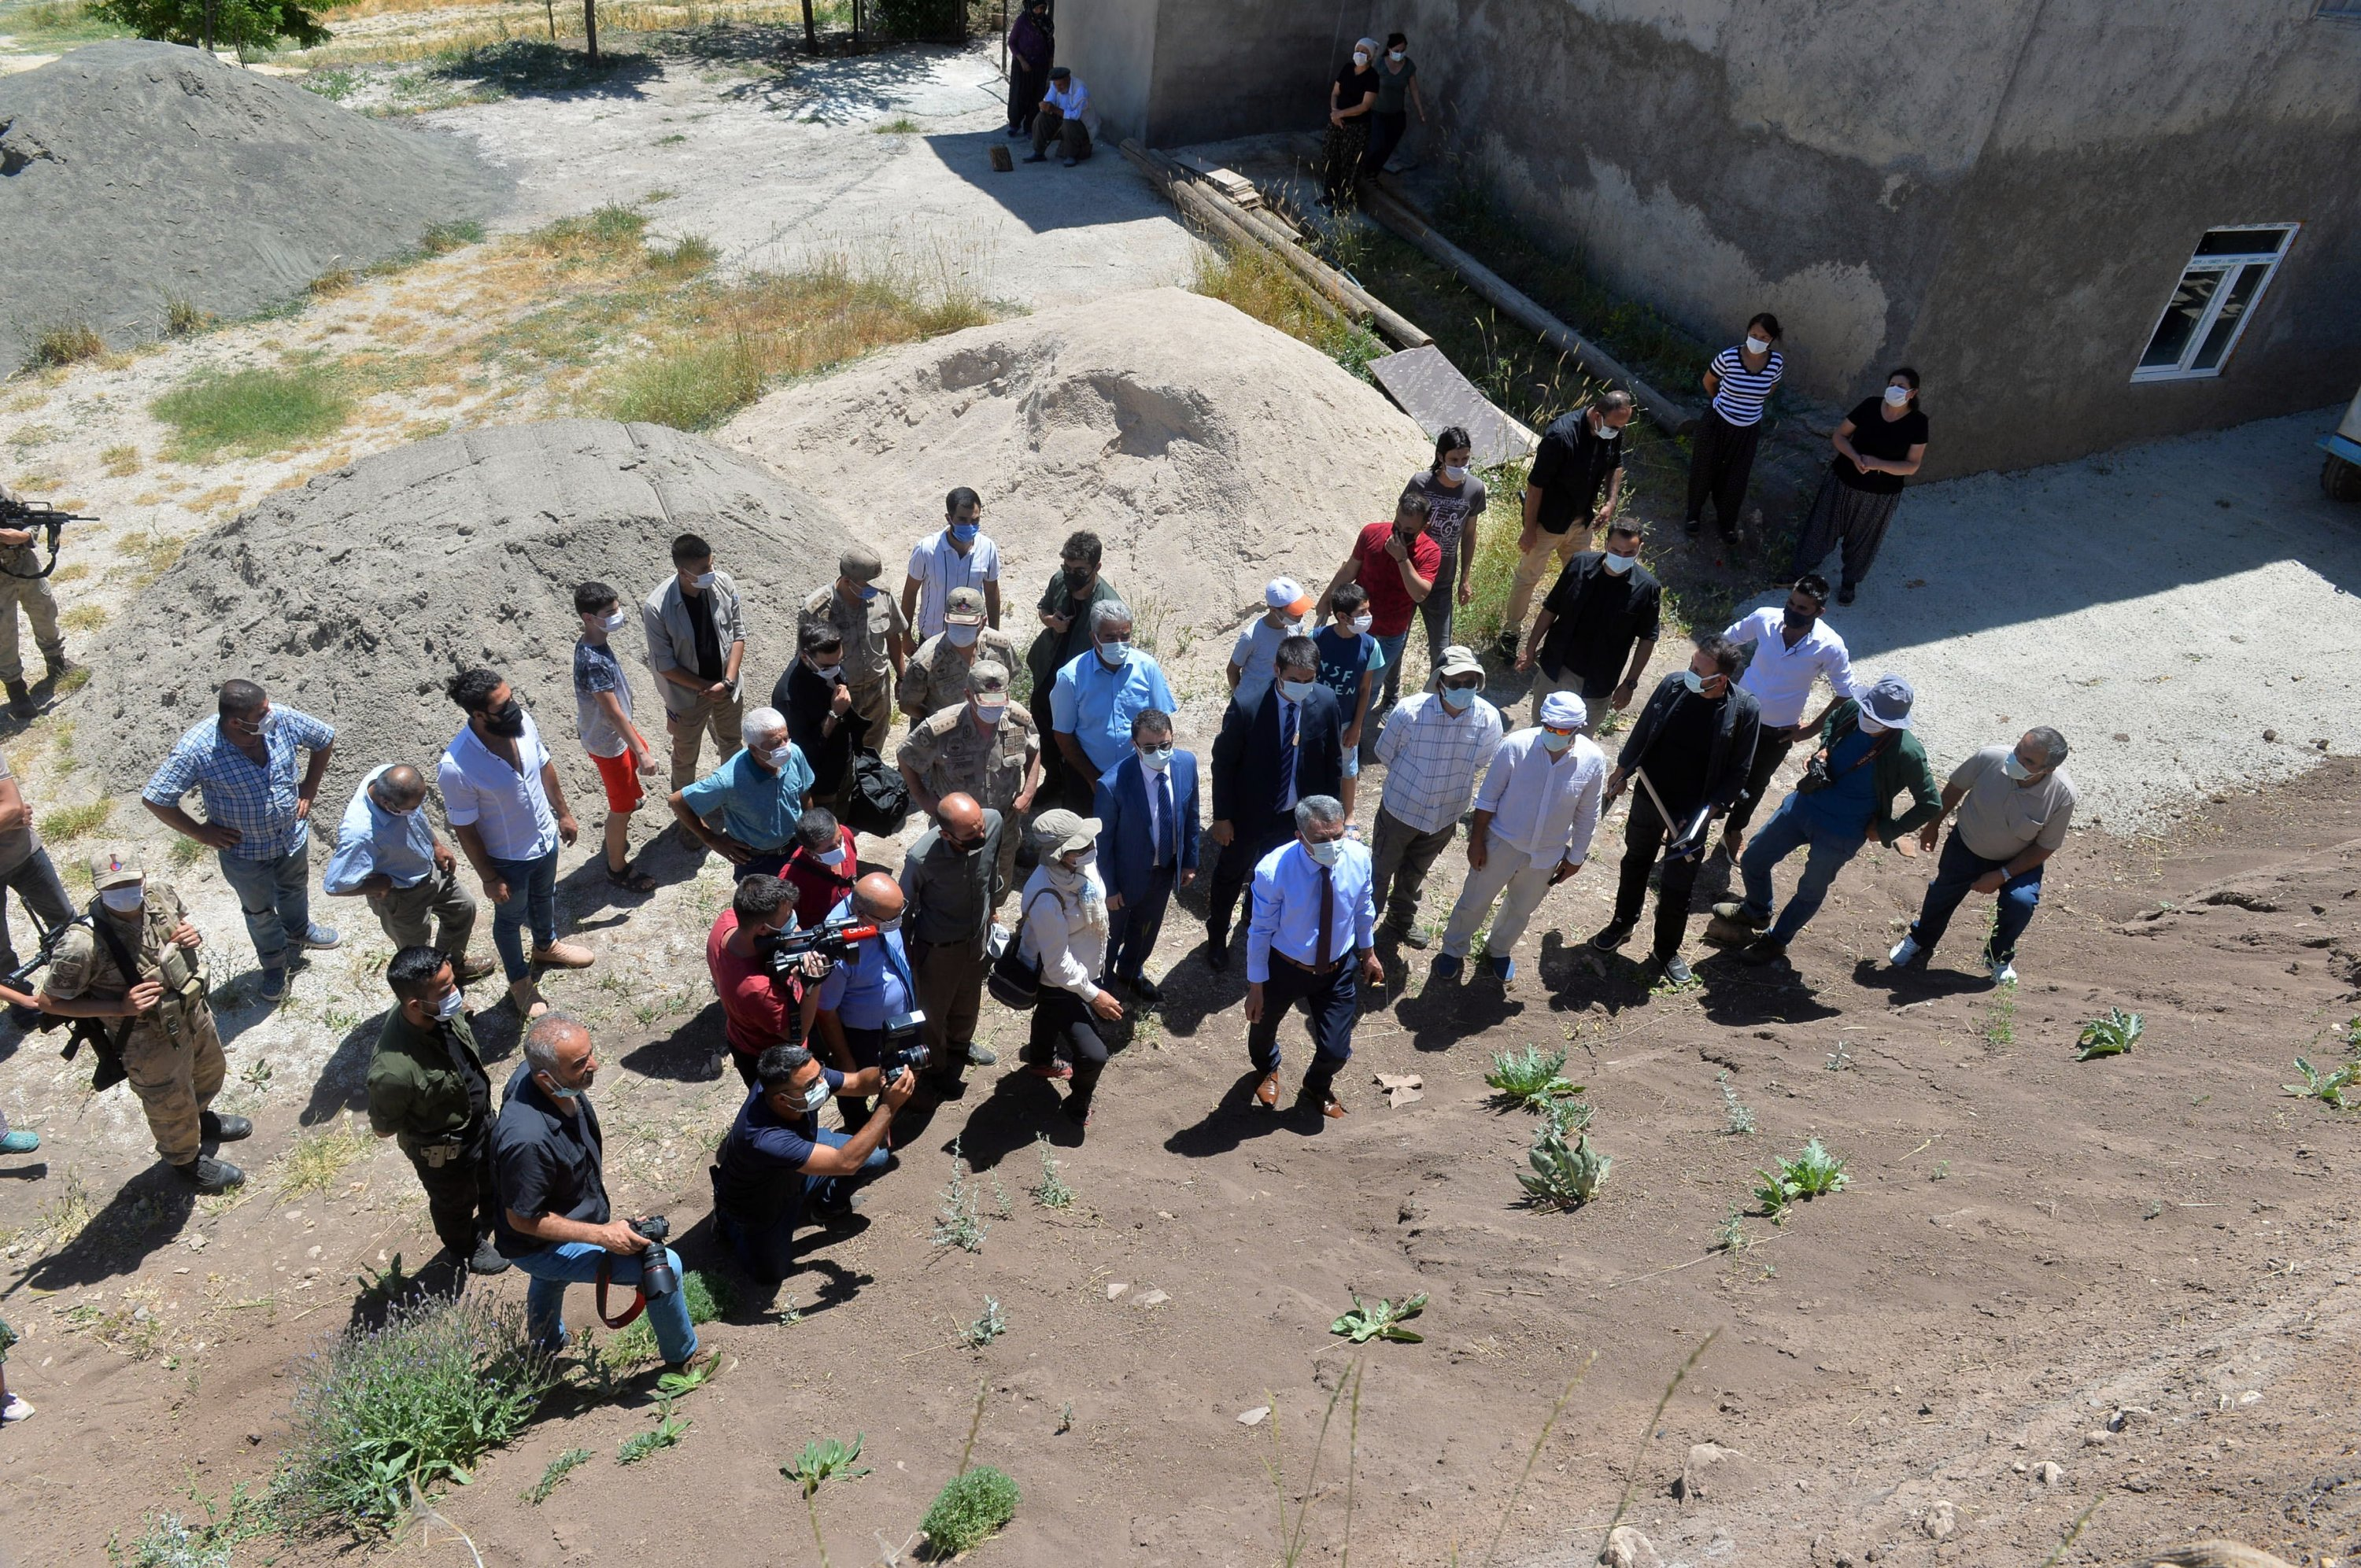 A group of archaeologists, academicians and authorities inspect the Tozkoparan Mound site in Tunceli, Turkey, June 22, 2021. (AA Photo)